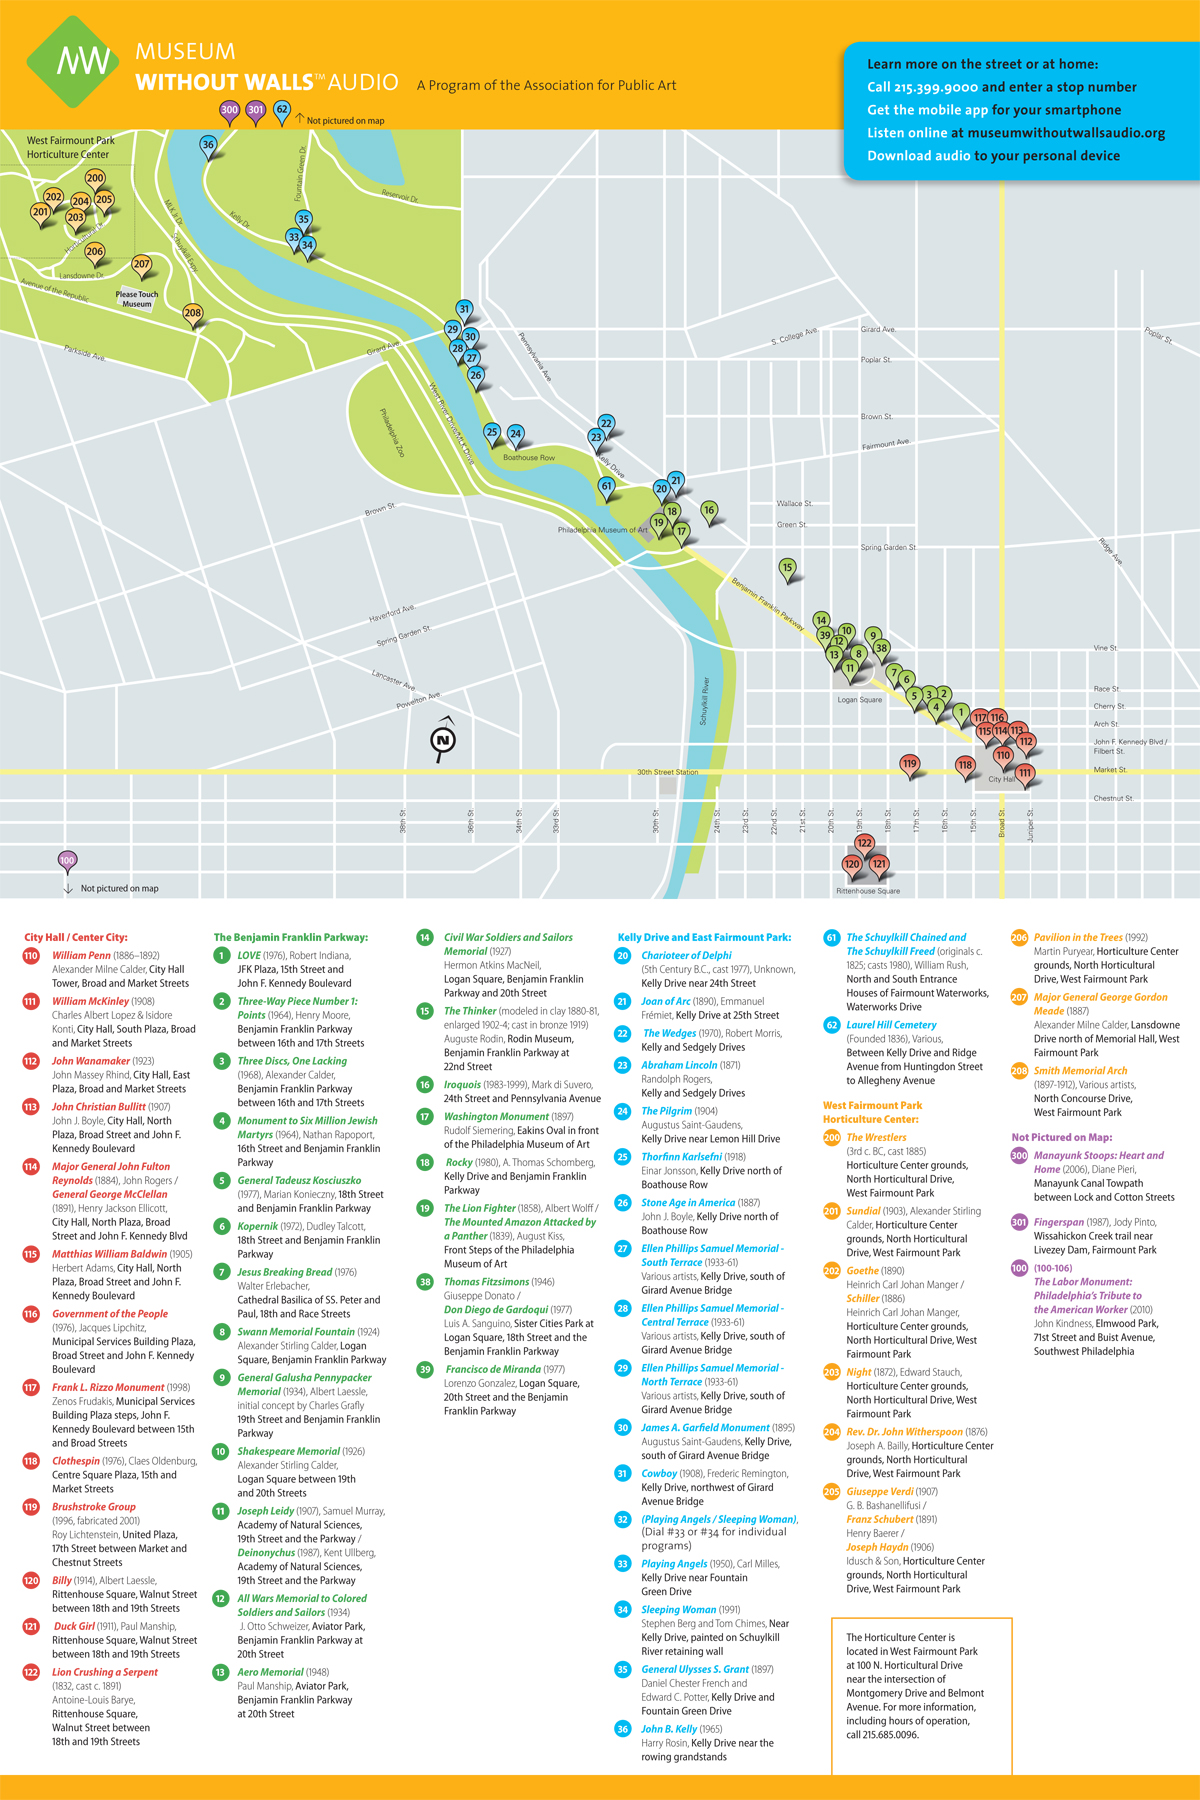 Museum Without Walls™ AUDIO brochure map